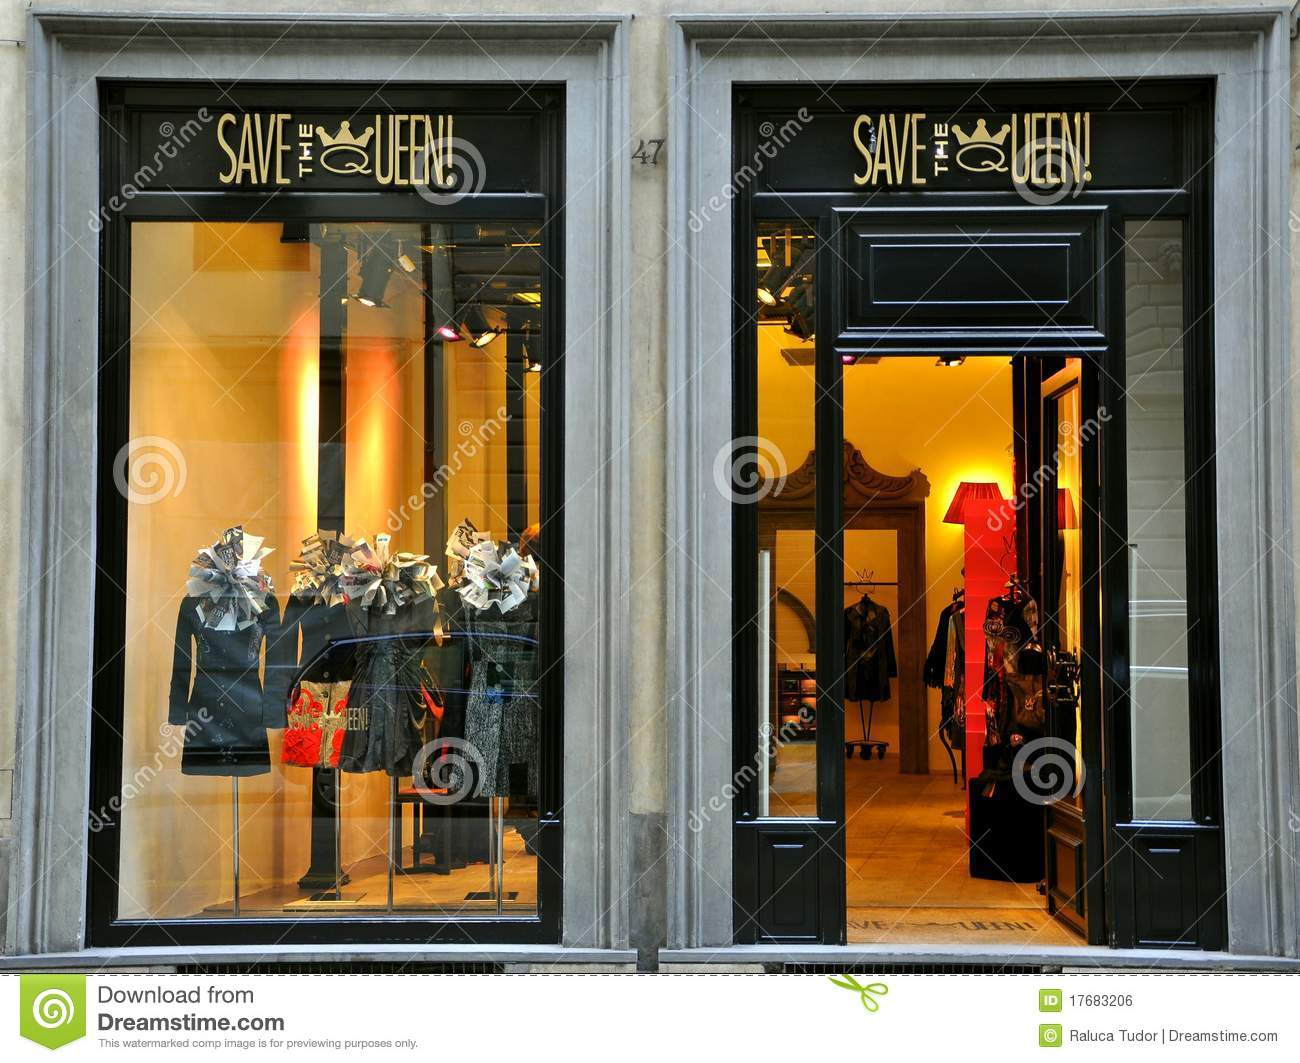 Clothing stores online. Clothing stores in china